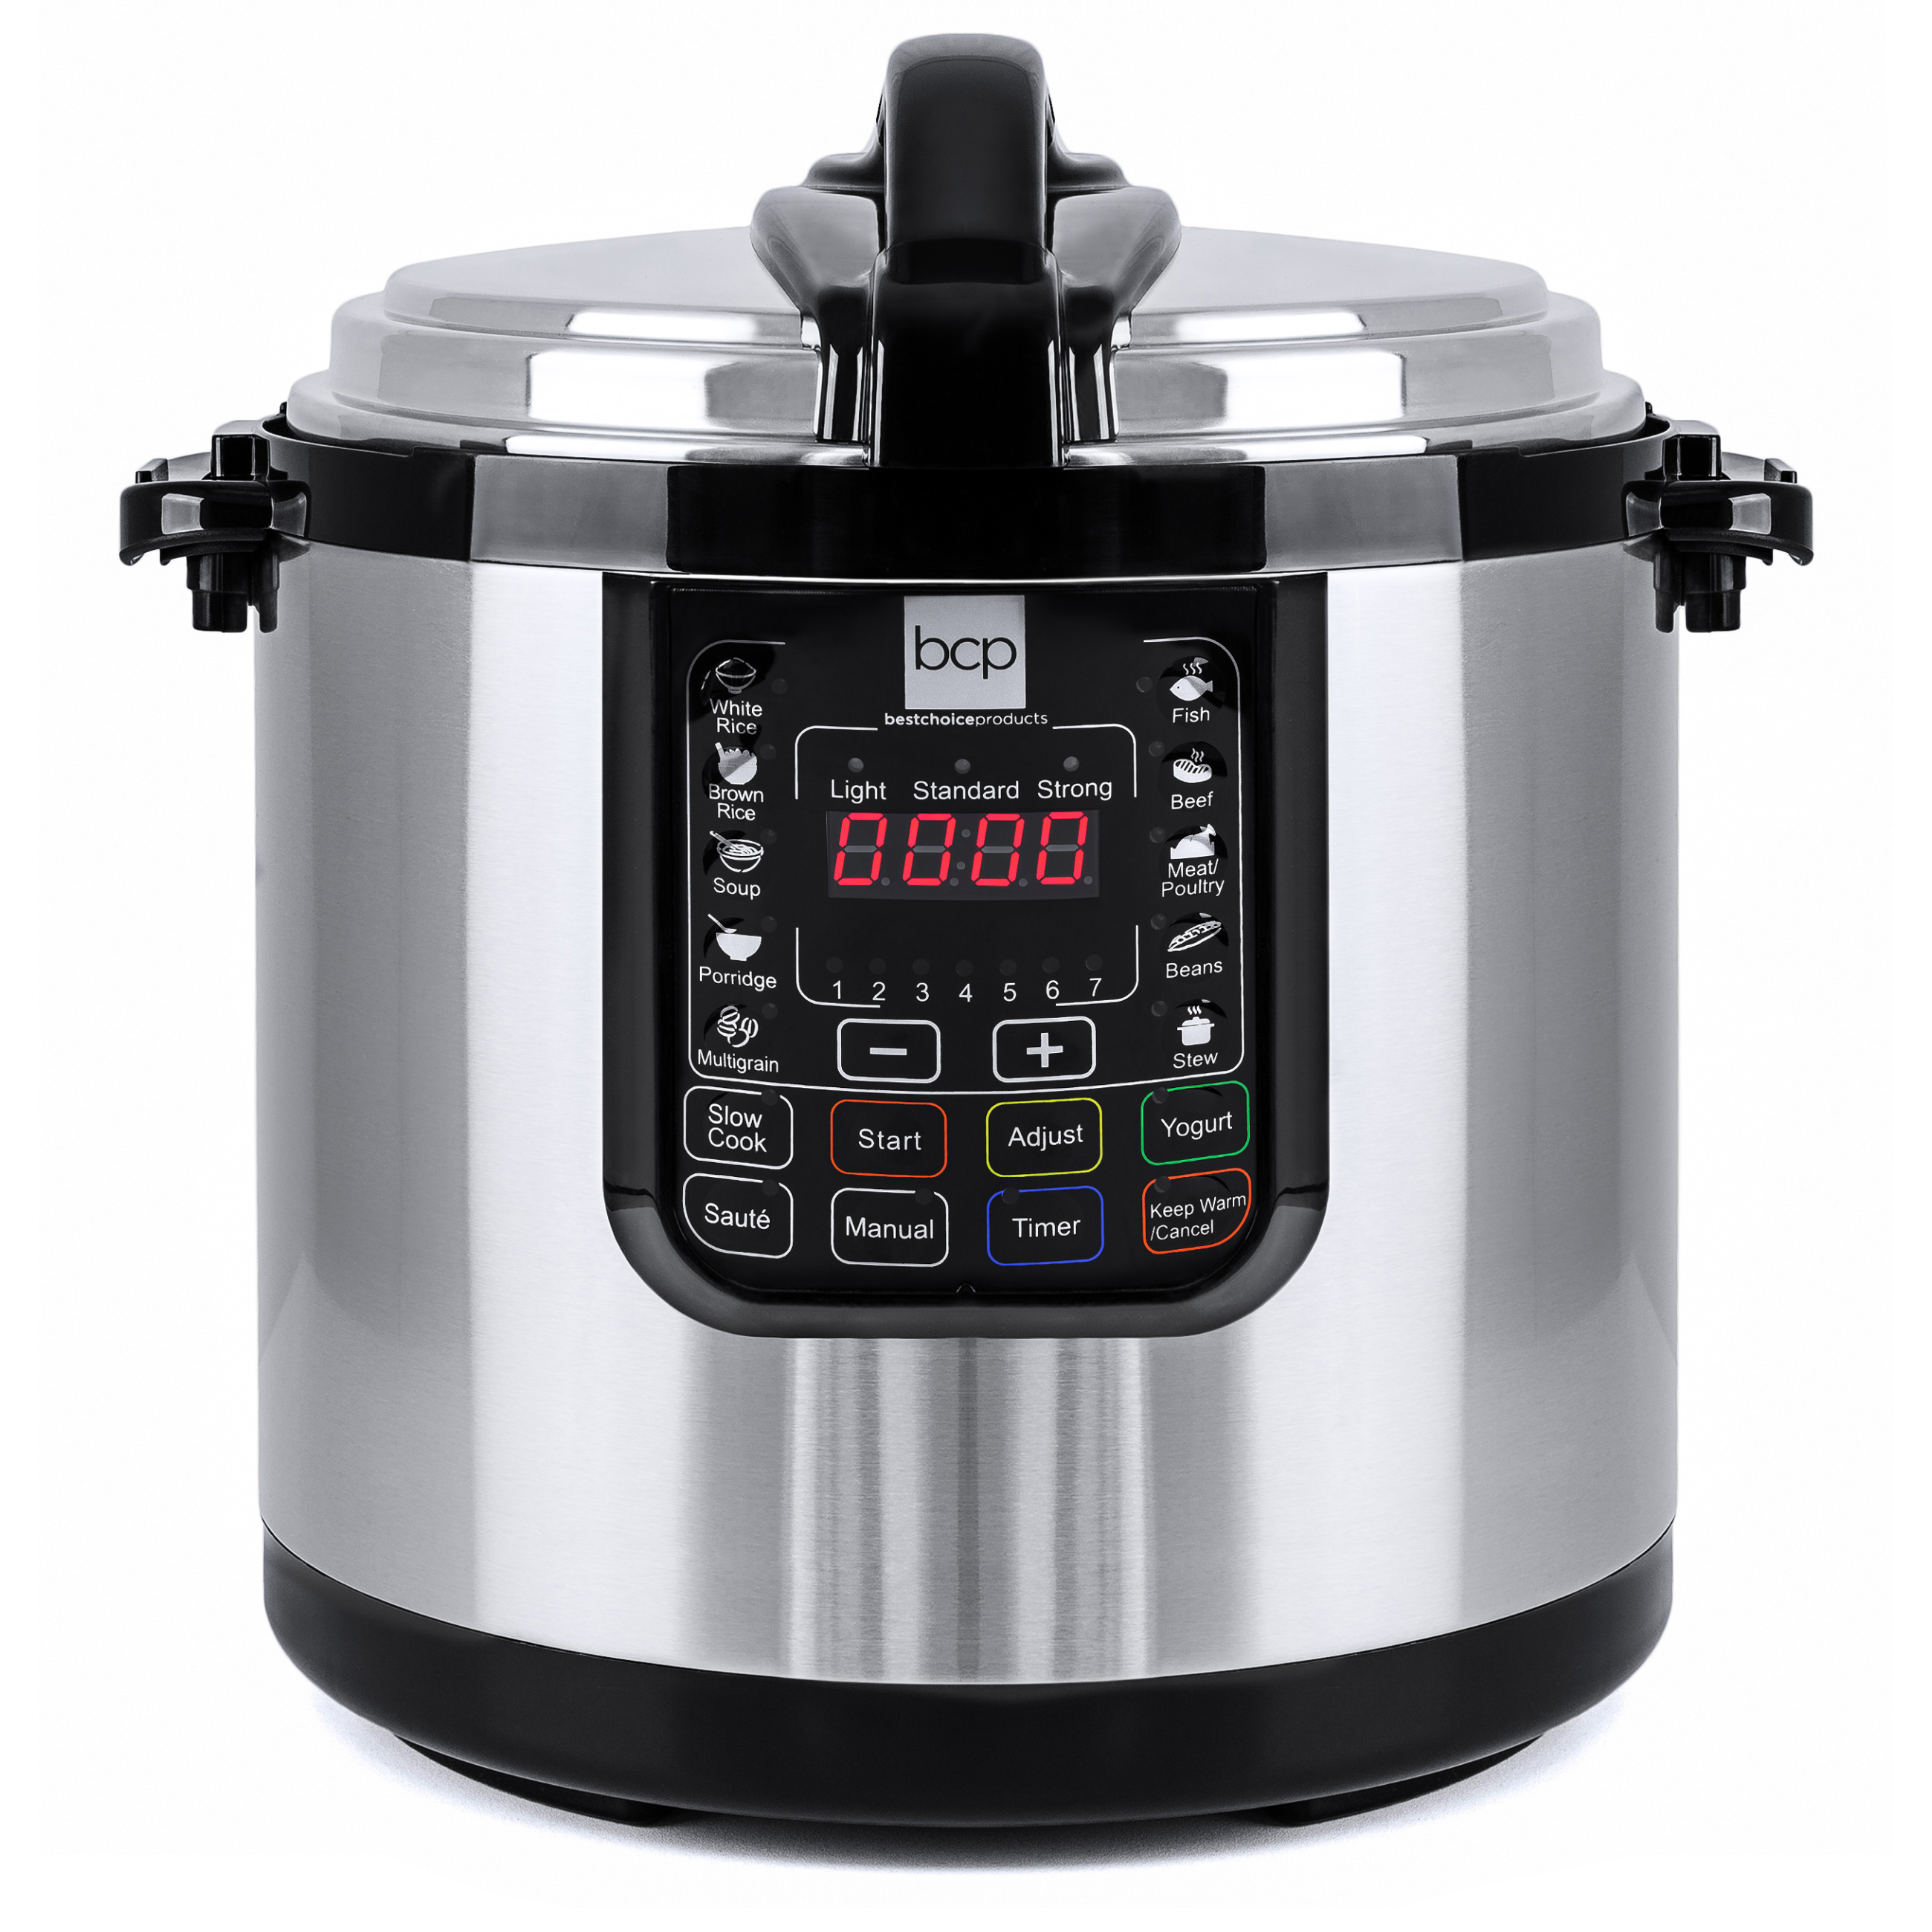 Best Choice Products 12-Liter 1000 Watt Stainless Steel Electric Pressure Cooker W  LED Display Screen by